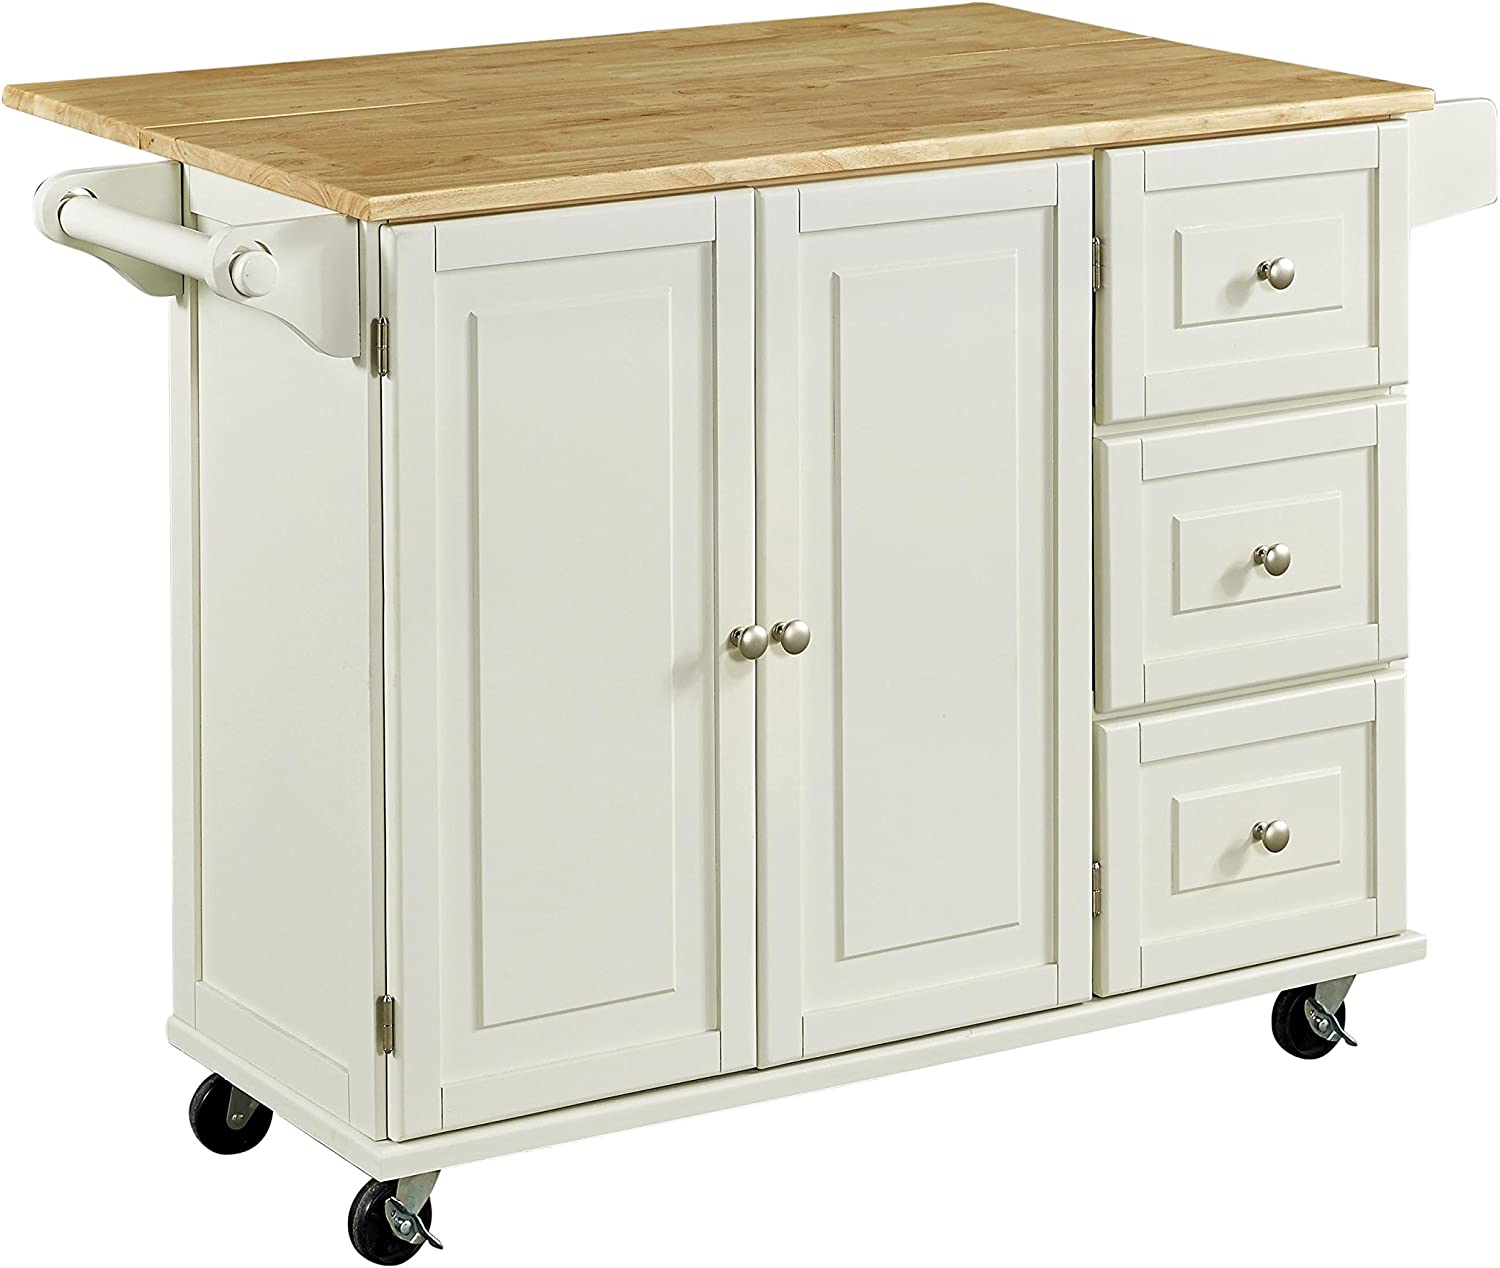 Liberty White Kitchen Utility Cart with Wood Top by Home Styles